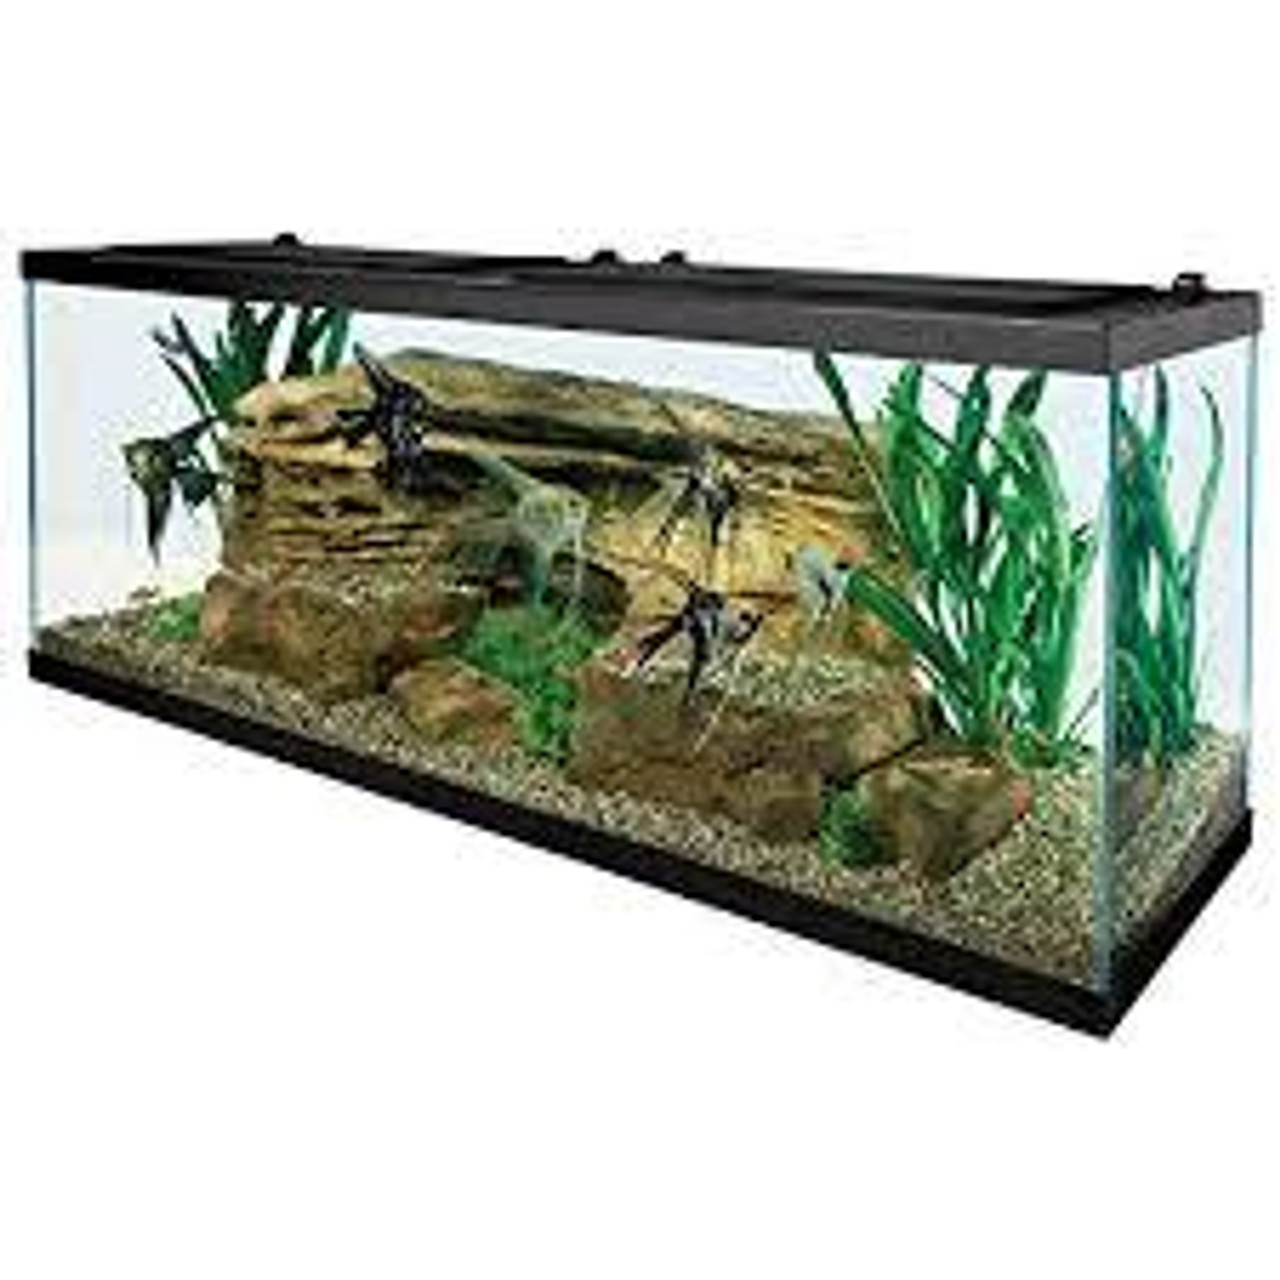 Reservoir - Fish Tank Sizing